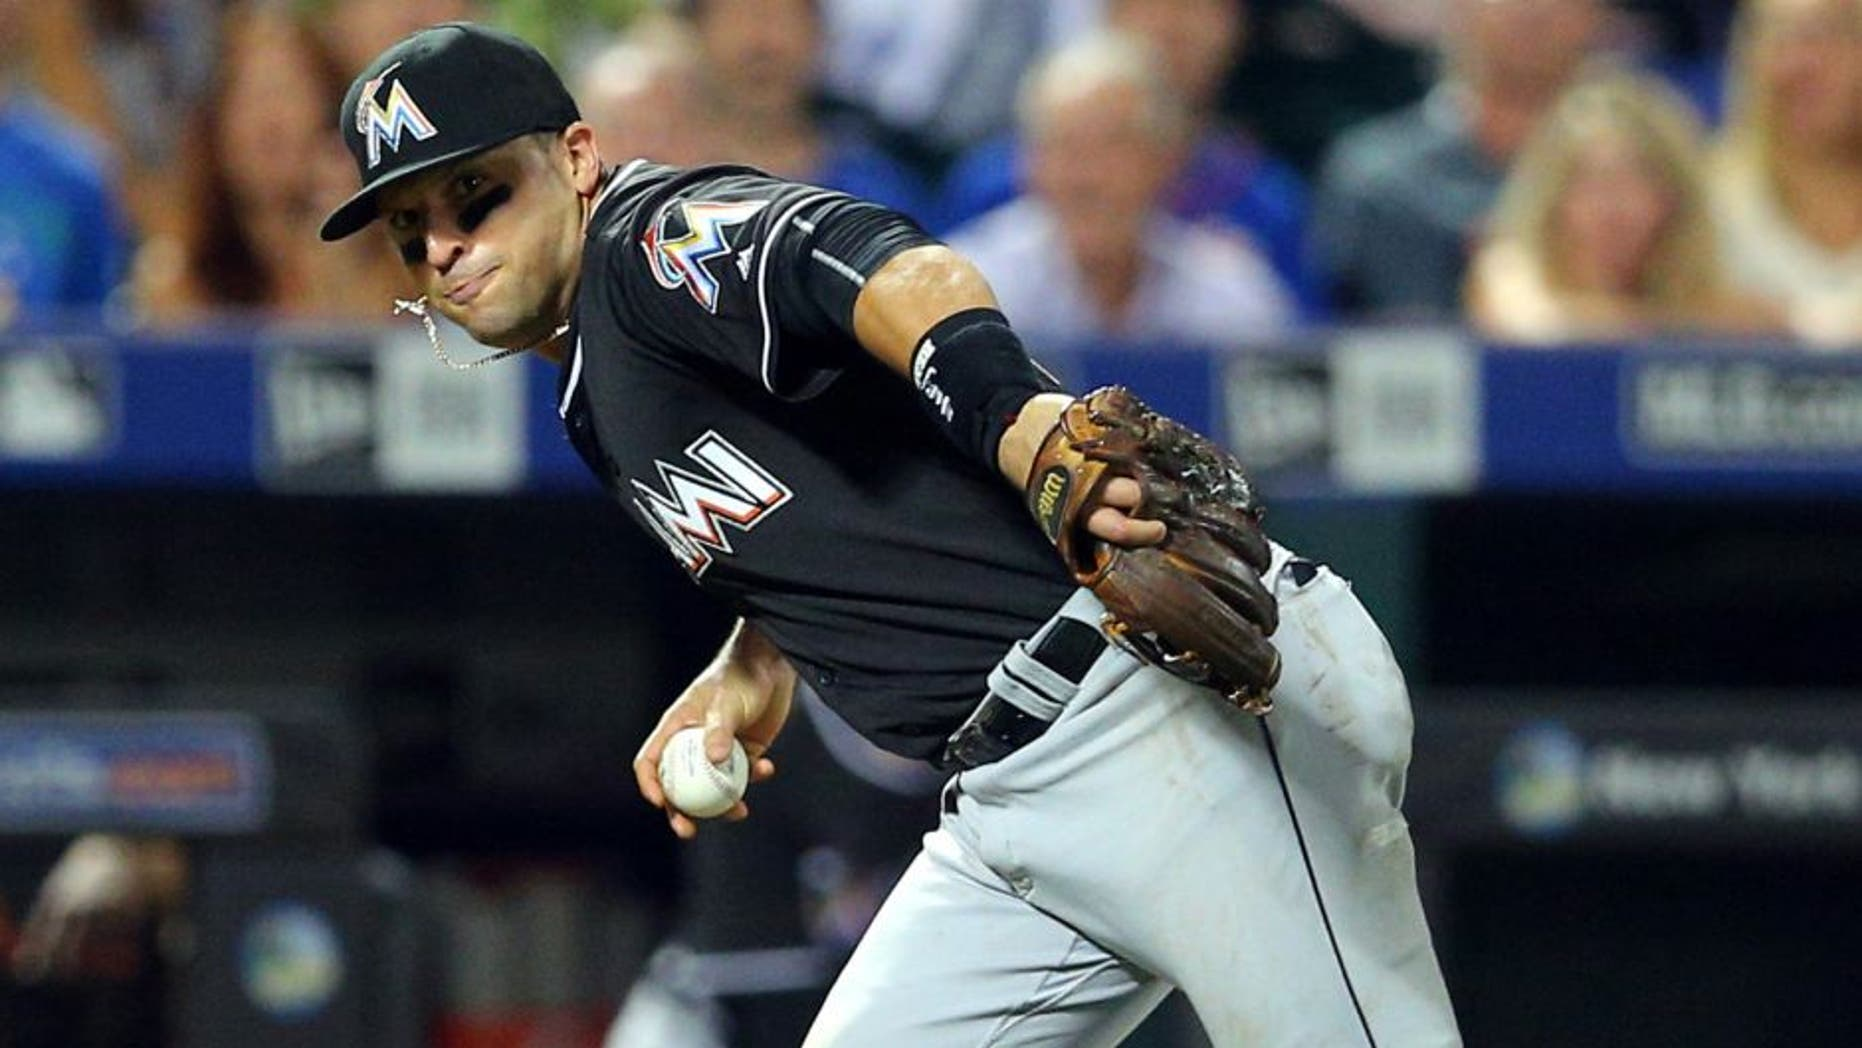 Aug 30, 2016; New York City, NY, USA; Miami Marlins third baseman Martin Prado (14) bare hands a ground ball and throws out New York Mets catcher Rene Rivera (not pictured) to end the fifth inning at Citi Field. Mandatory Credit: Brad Penner-USA TODAY Sports